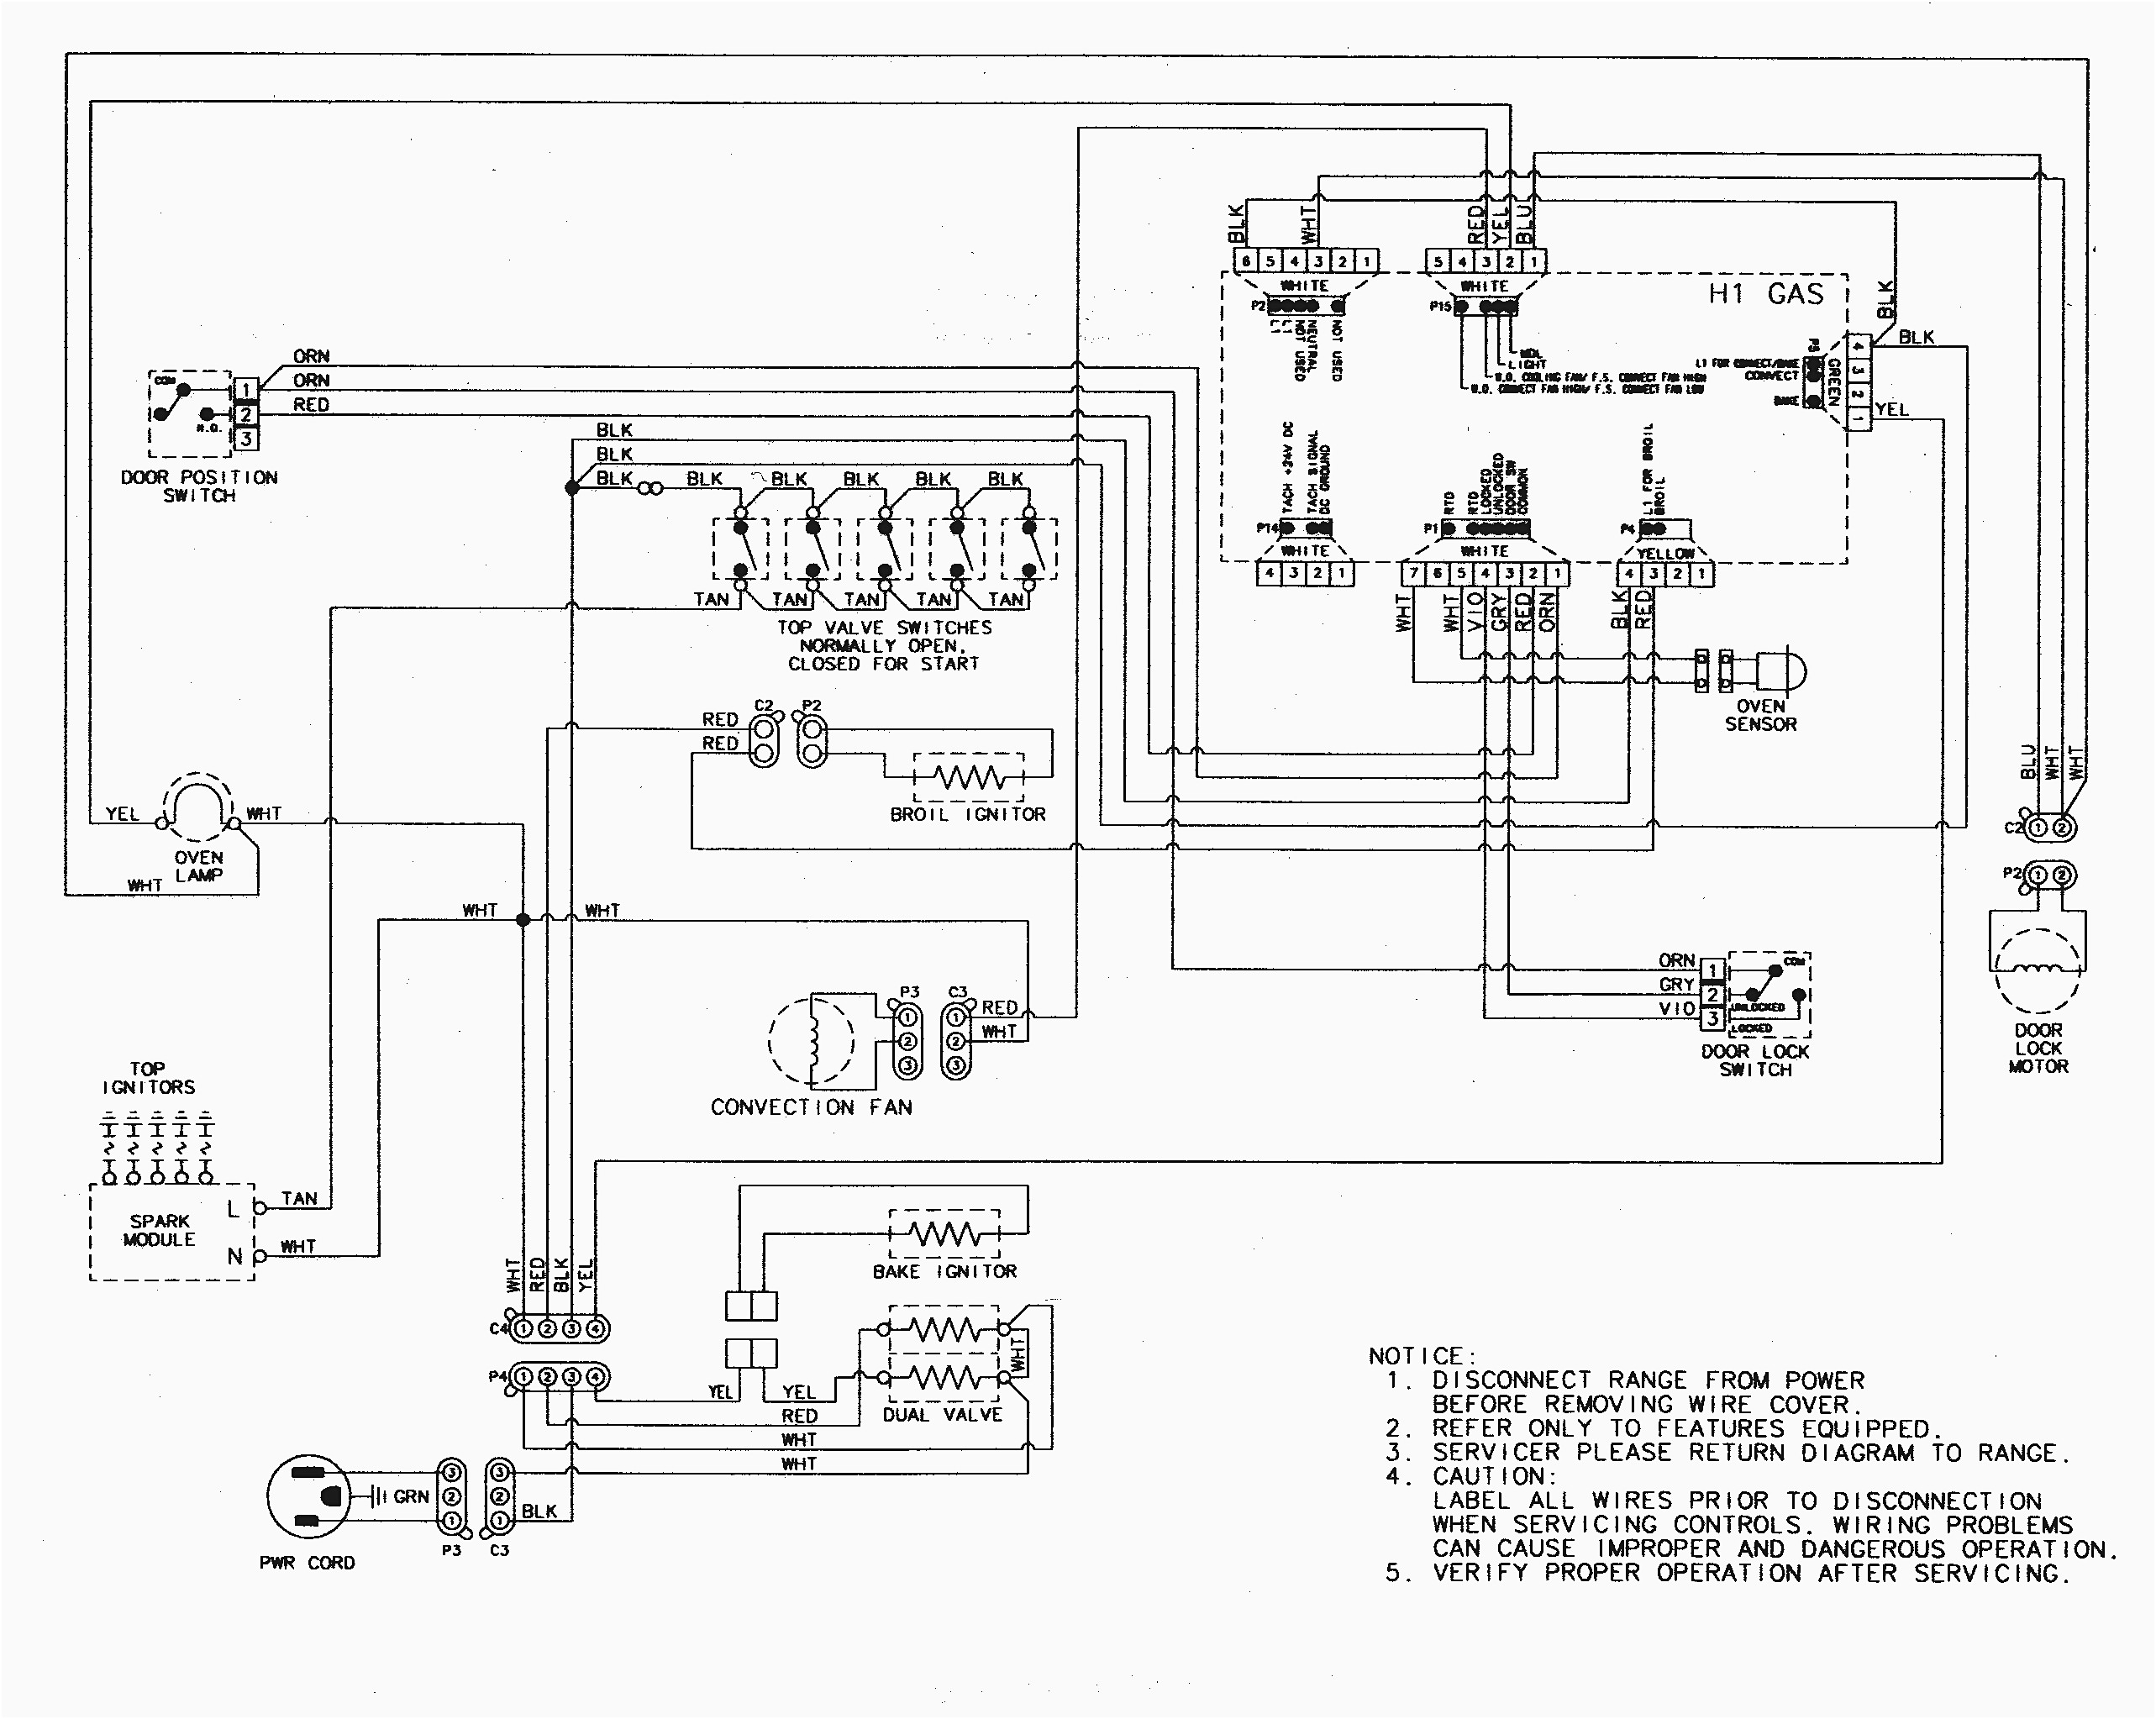 Magic Chef Range Wiring Diagram - Wiring Diagram Article on